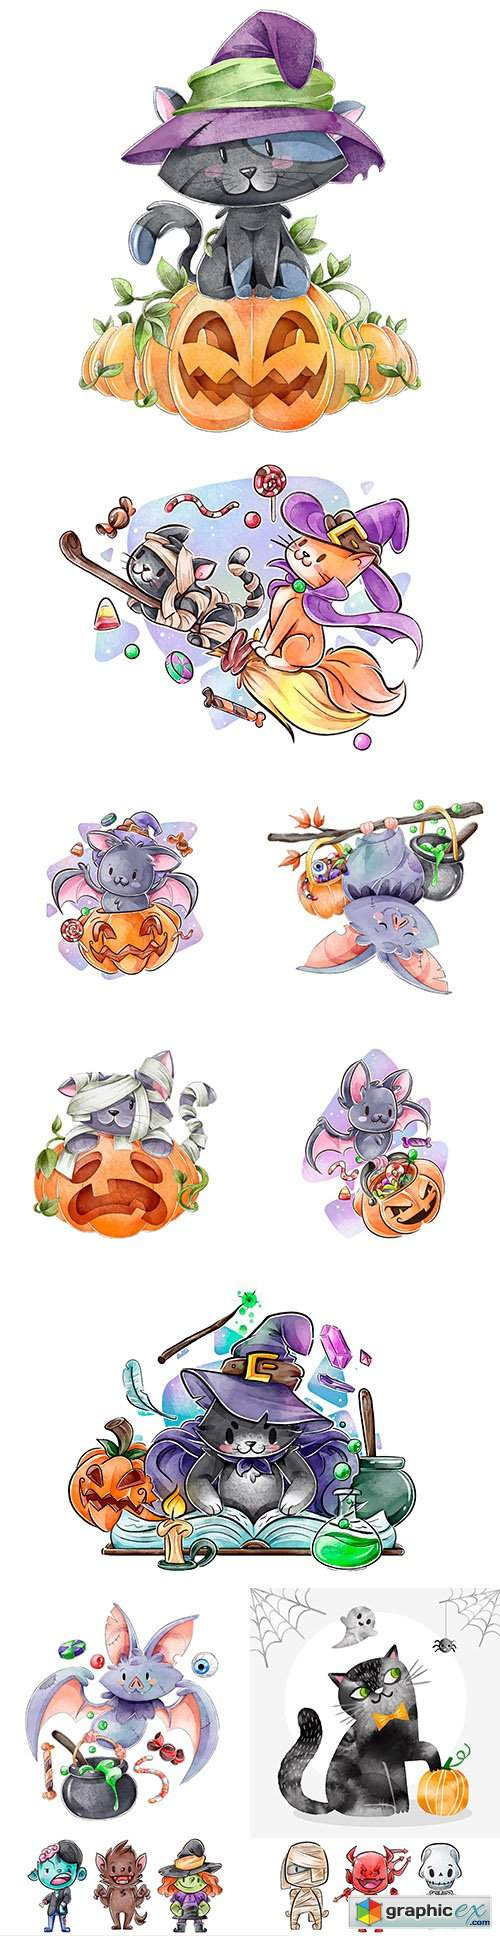 Happy Halloween holiday collection watercolor illustrations